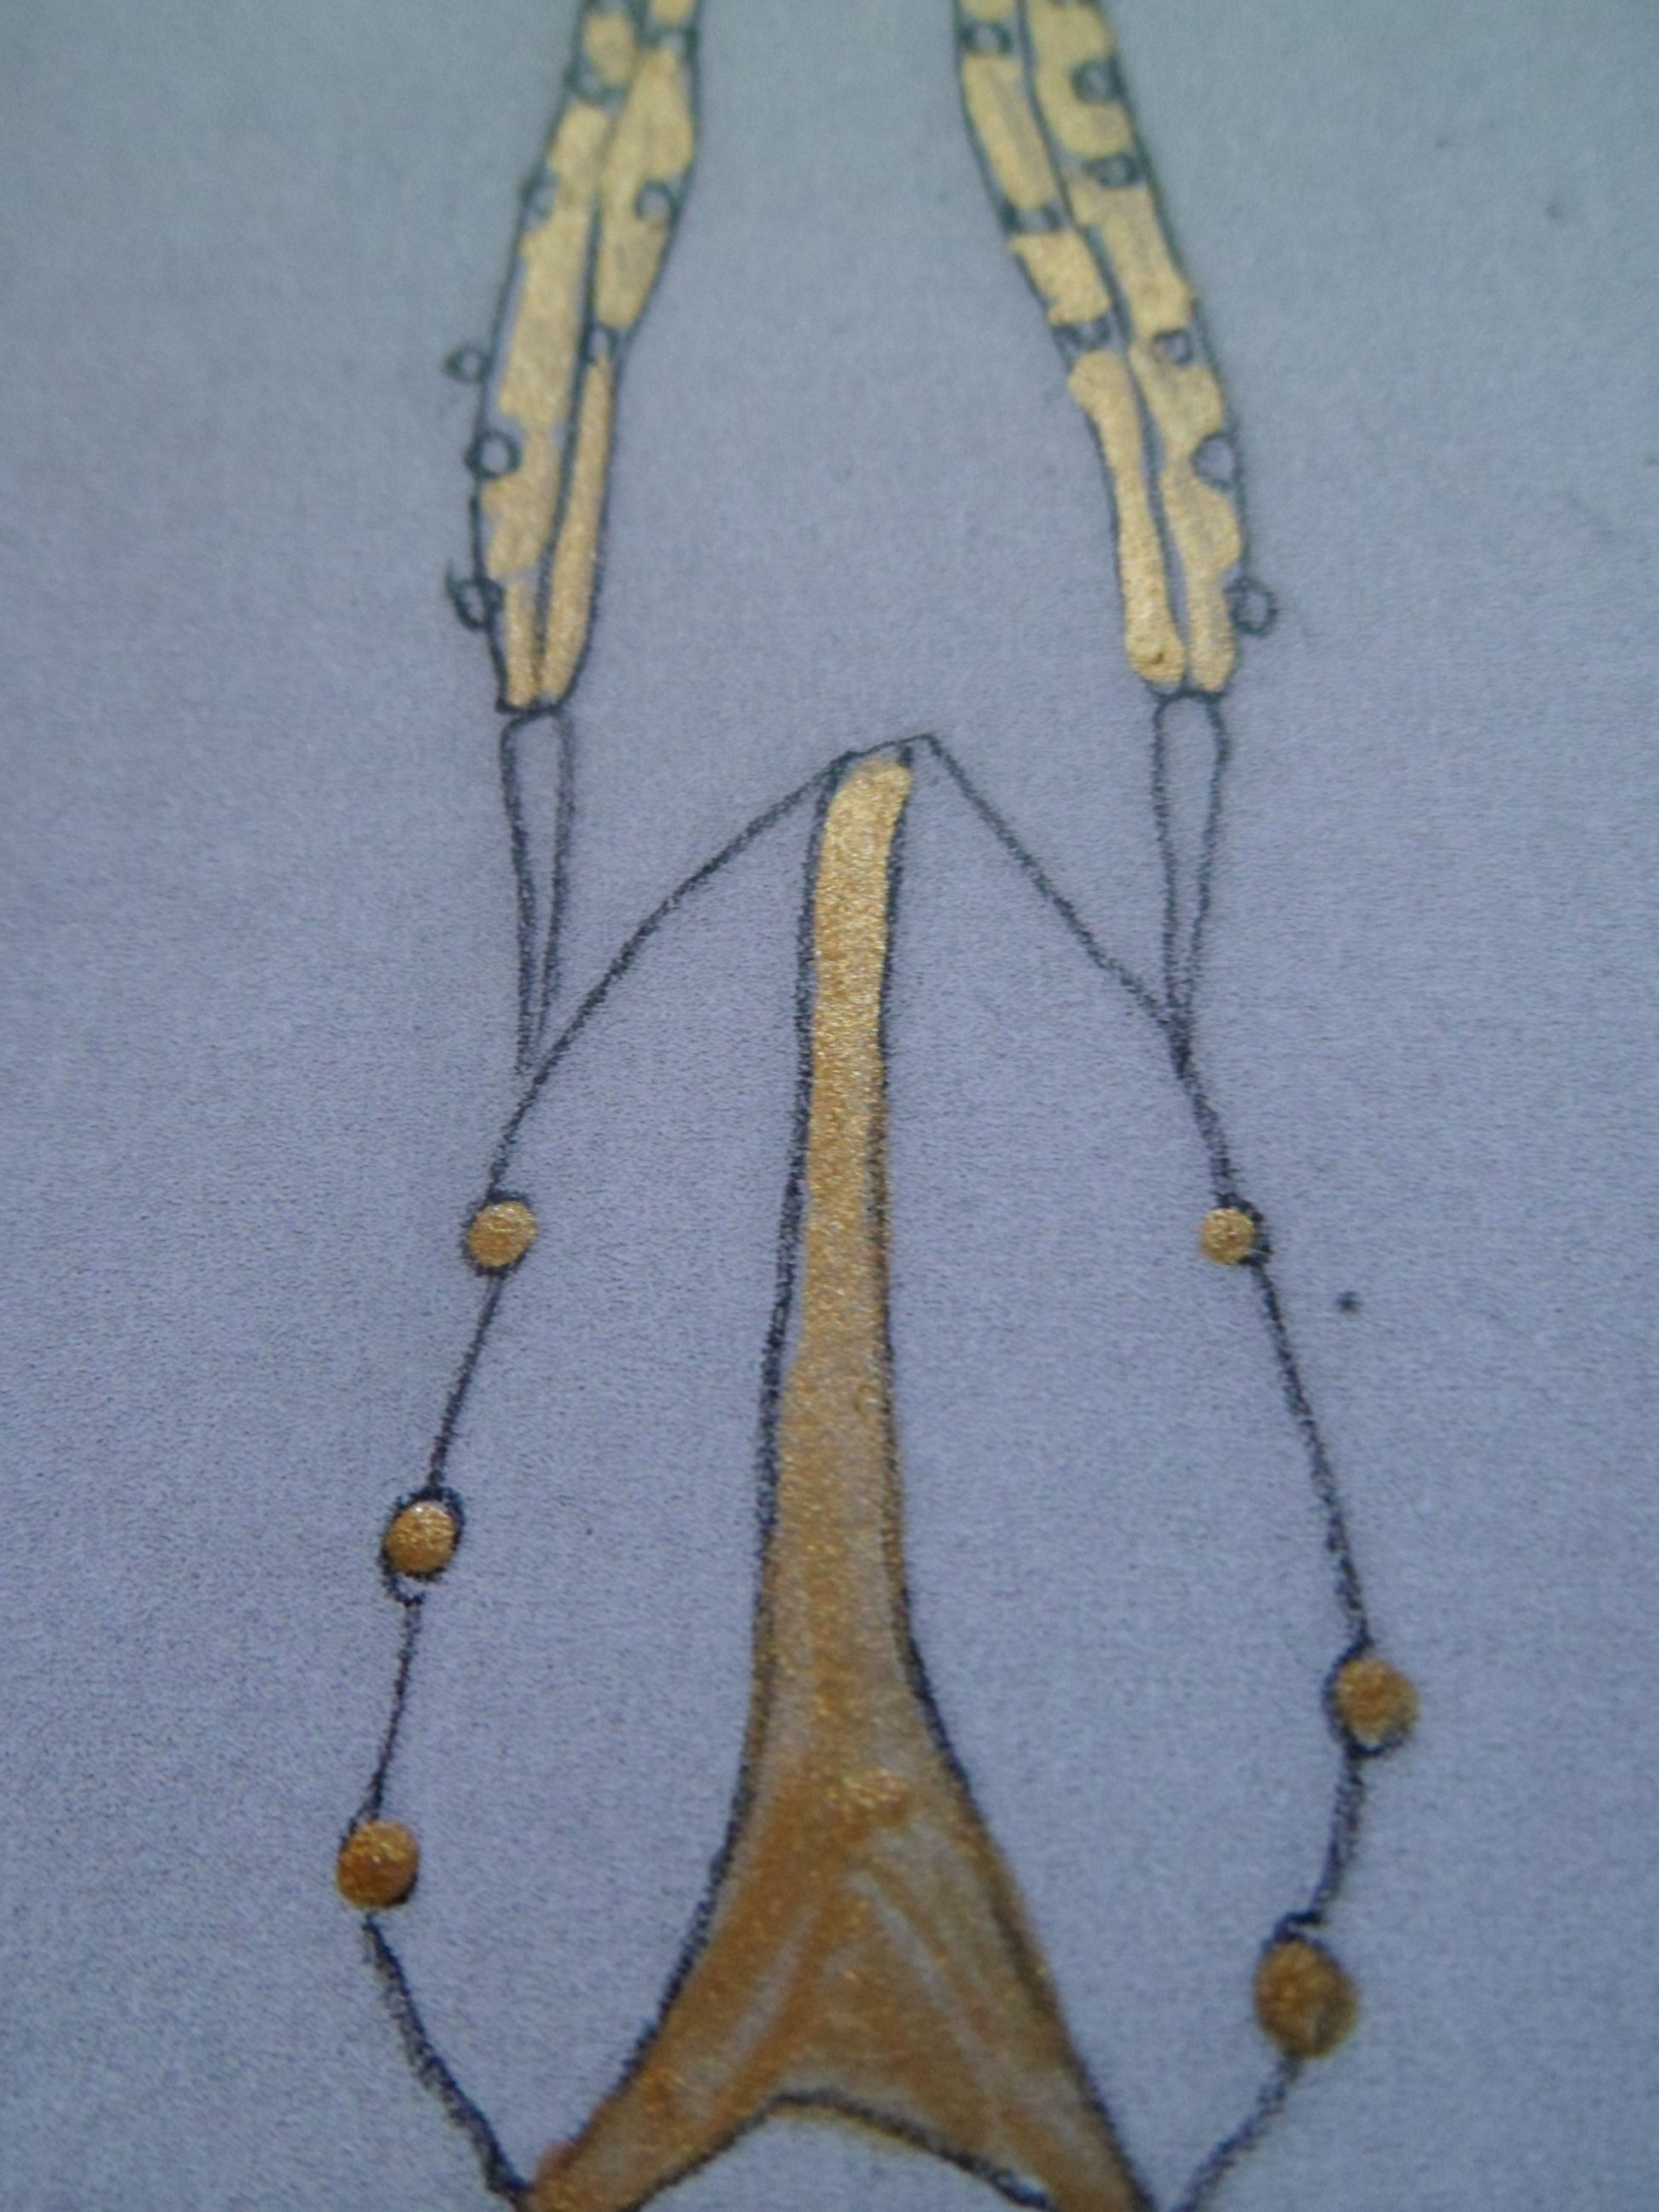 Pencil sketch with gold jewellery ideas